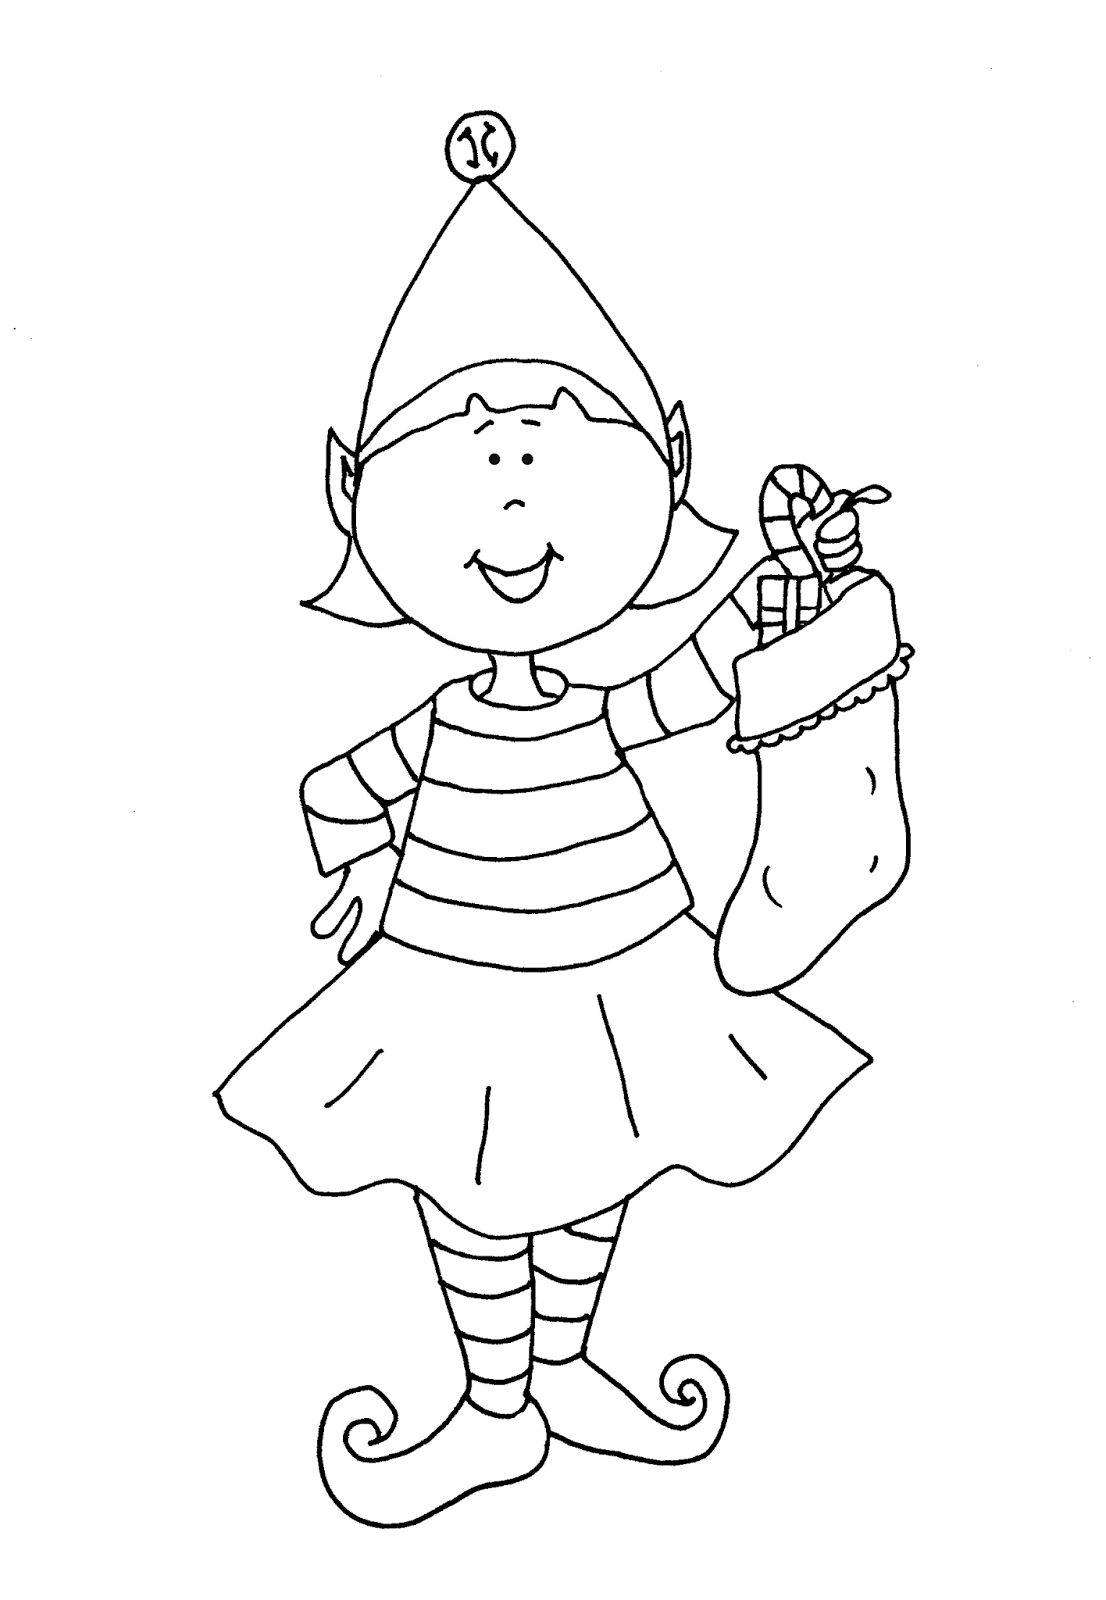 Christmas Coloring Pages Elf With Free To Print For Girls Dearie Dolls